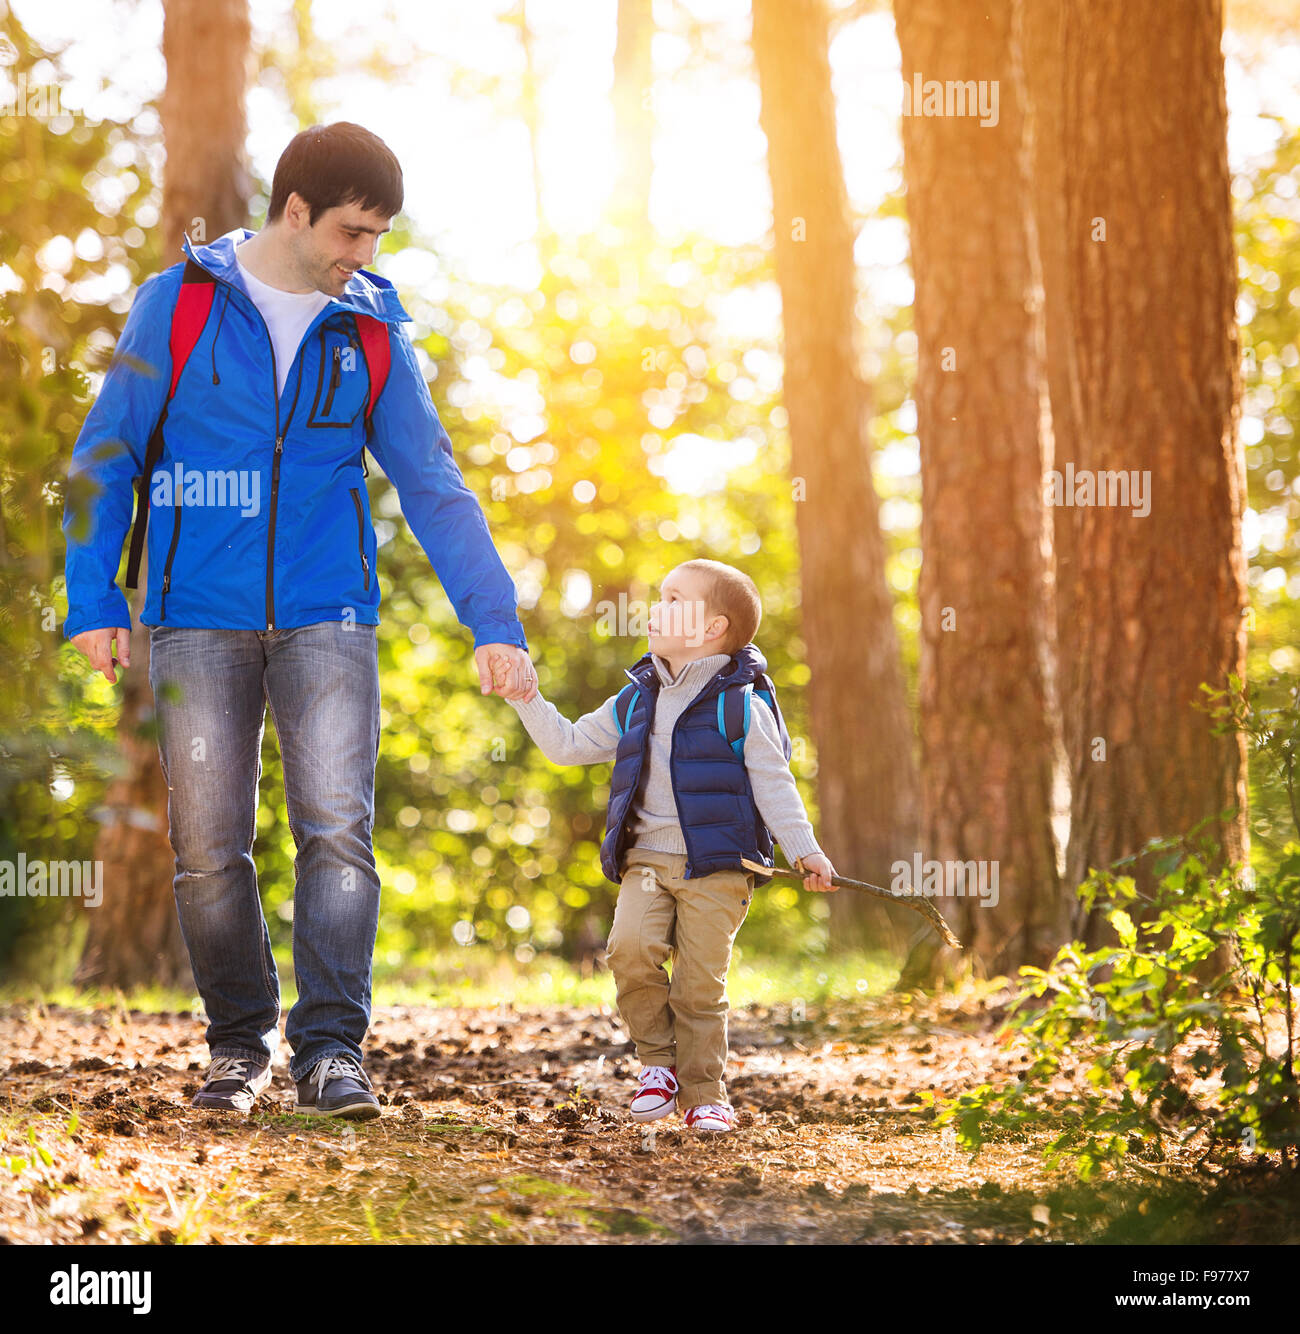 Father and son walking during the hiking activities in autumn forest at sunset - Stock Image